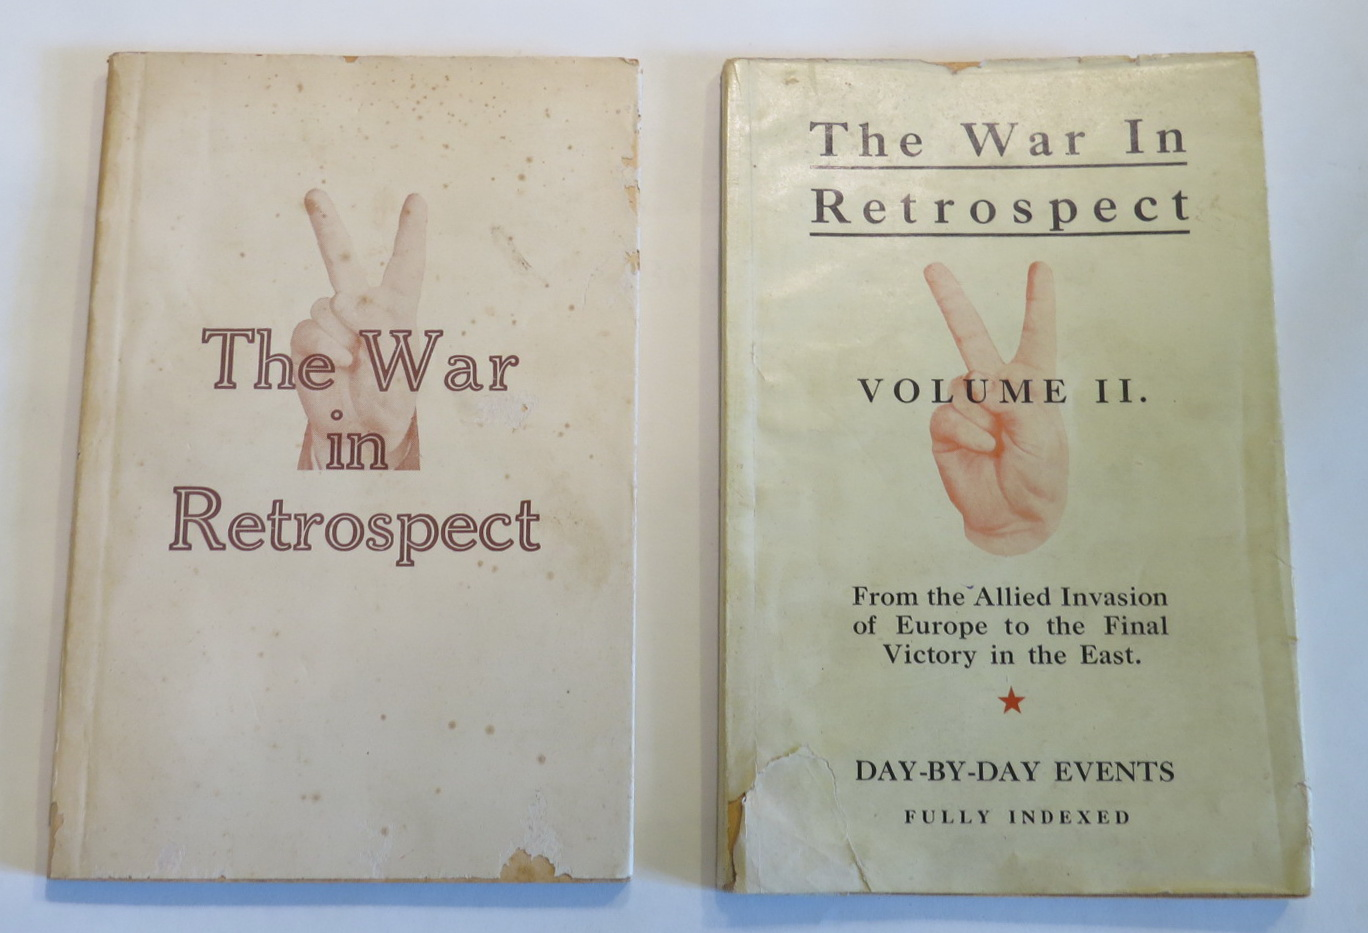 Image for The War in Retrospect: A Day-to-day Record of World War II. from Hitler's attack on Poland to the Allied Invasion of Europe. [+] Volume II [. . .] From the Allied Invasion of Europe to the Final Victory in the East. [Two Volumes]